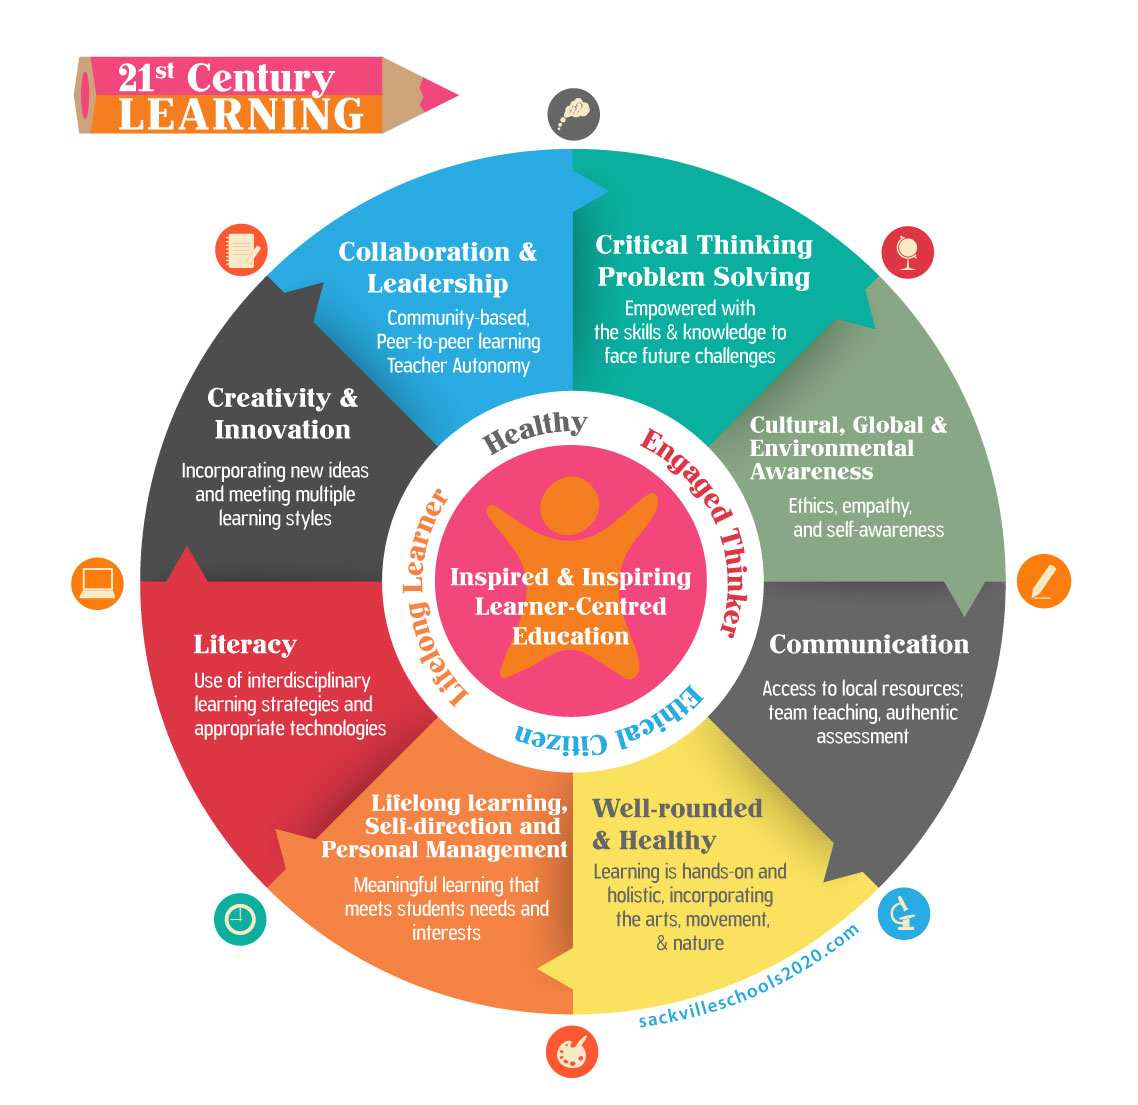 Guiding principles for 21st century learning